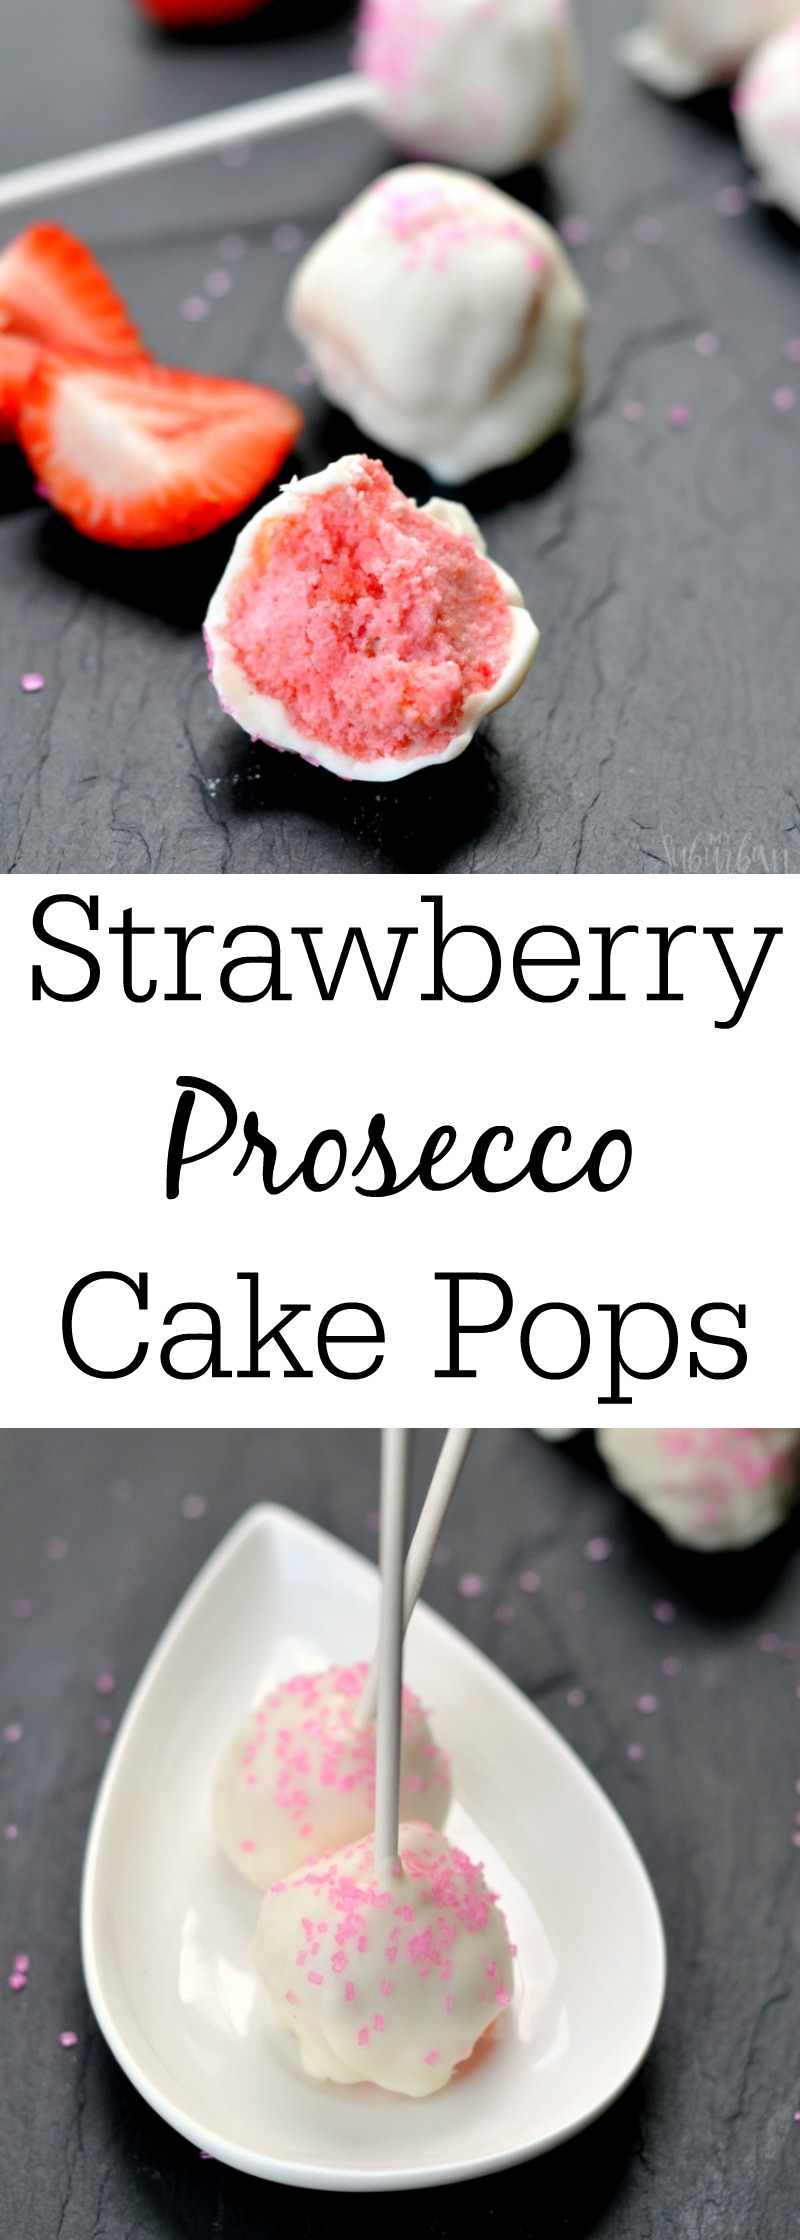 Strawberry Prosecco Cake Pops